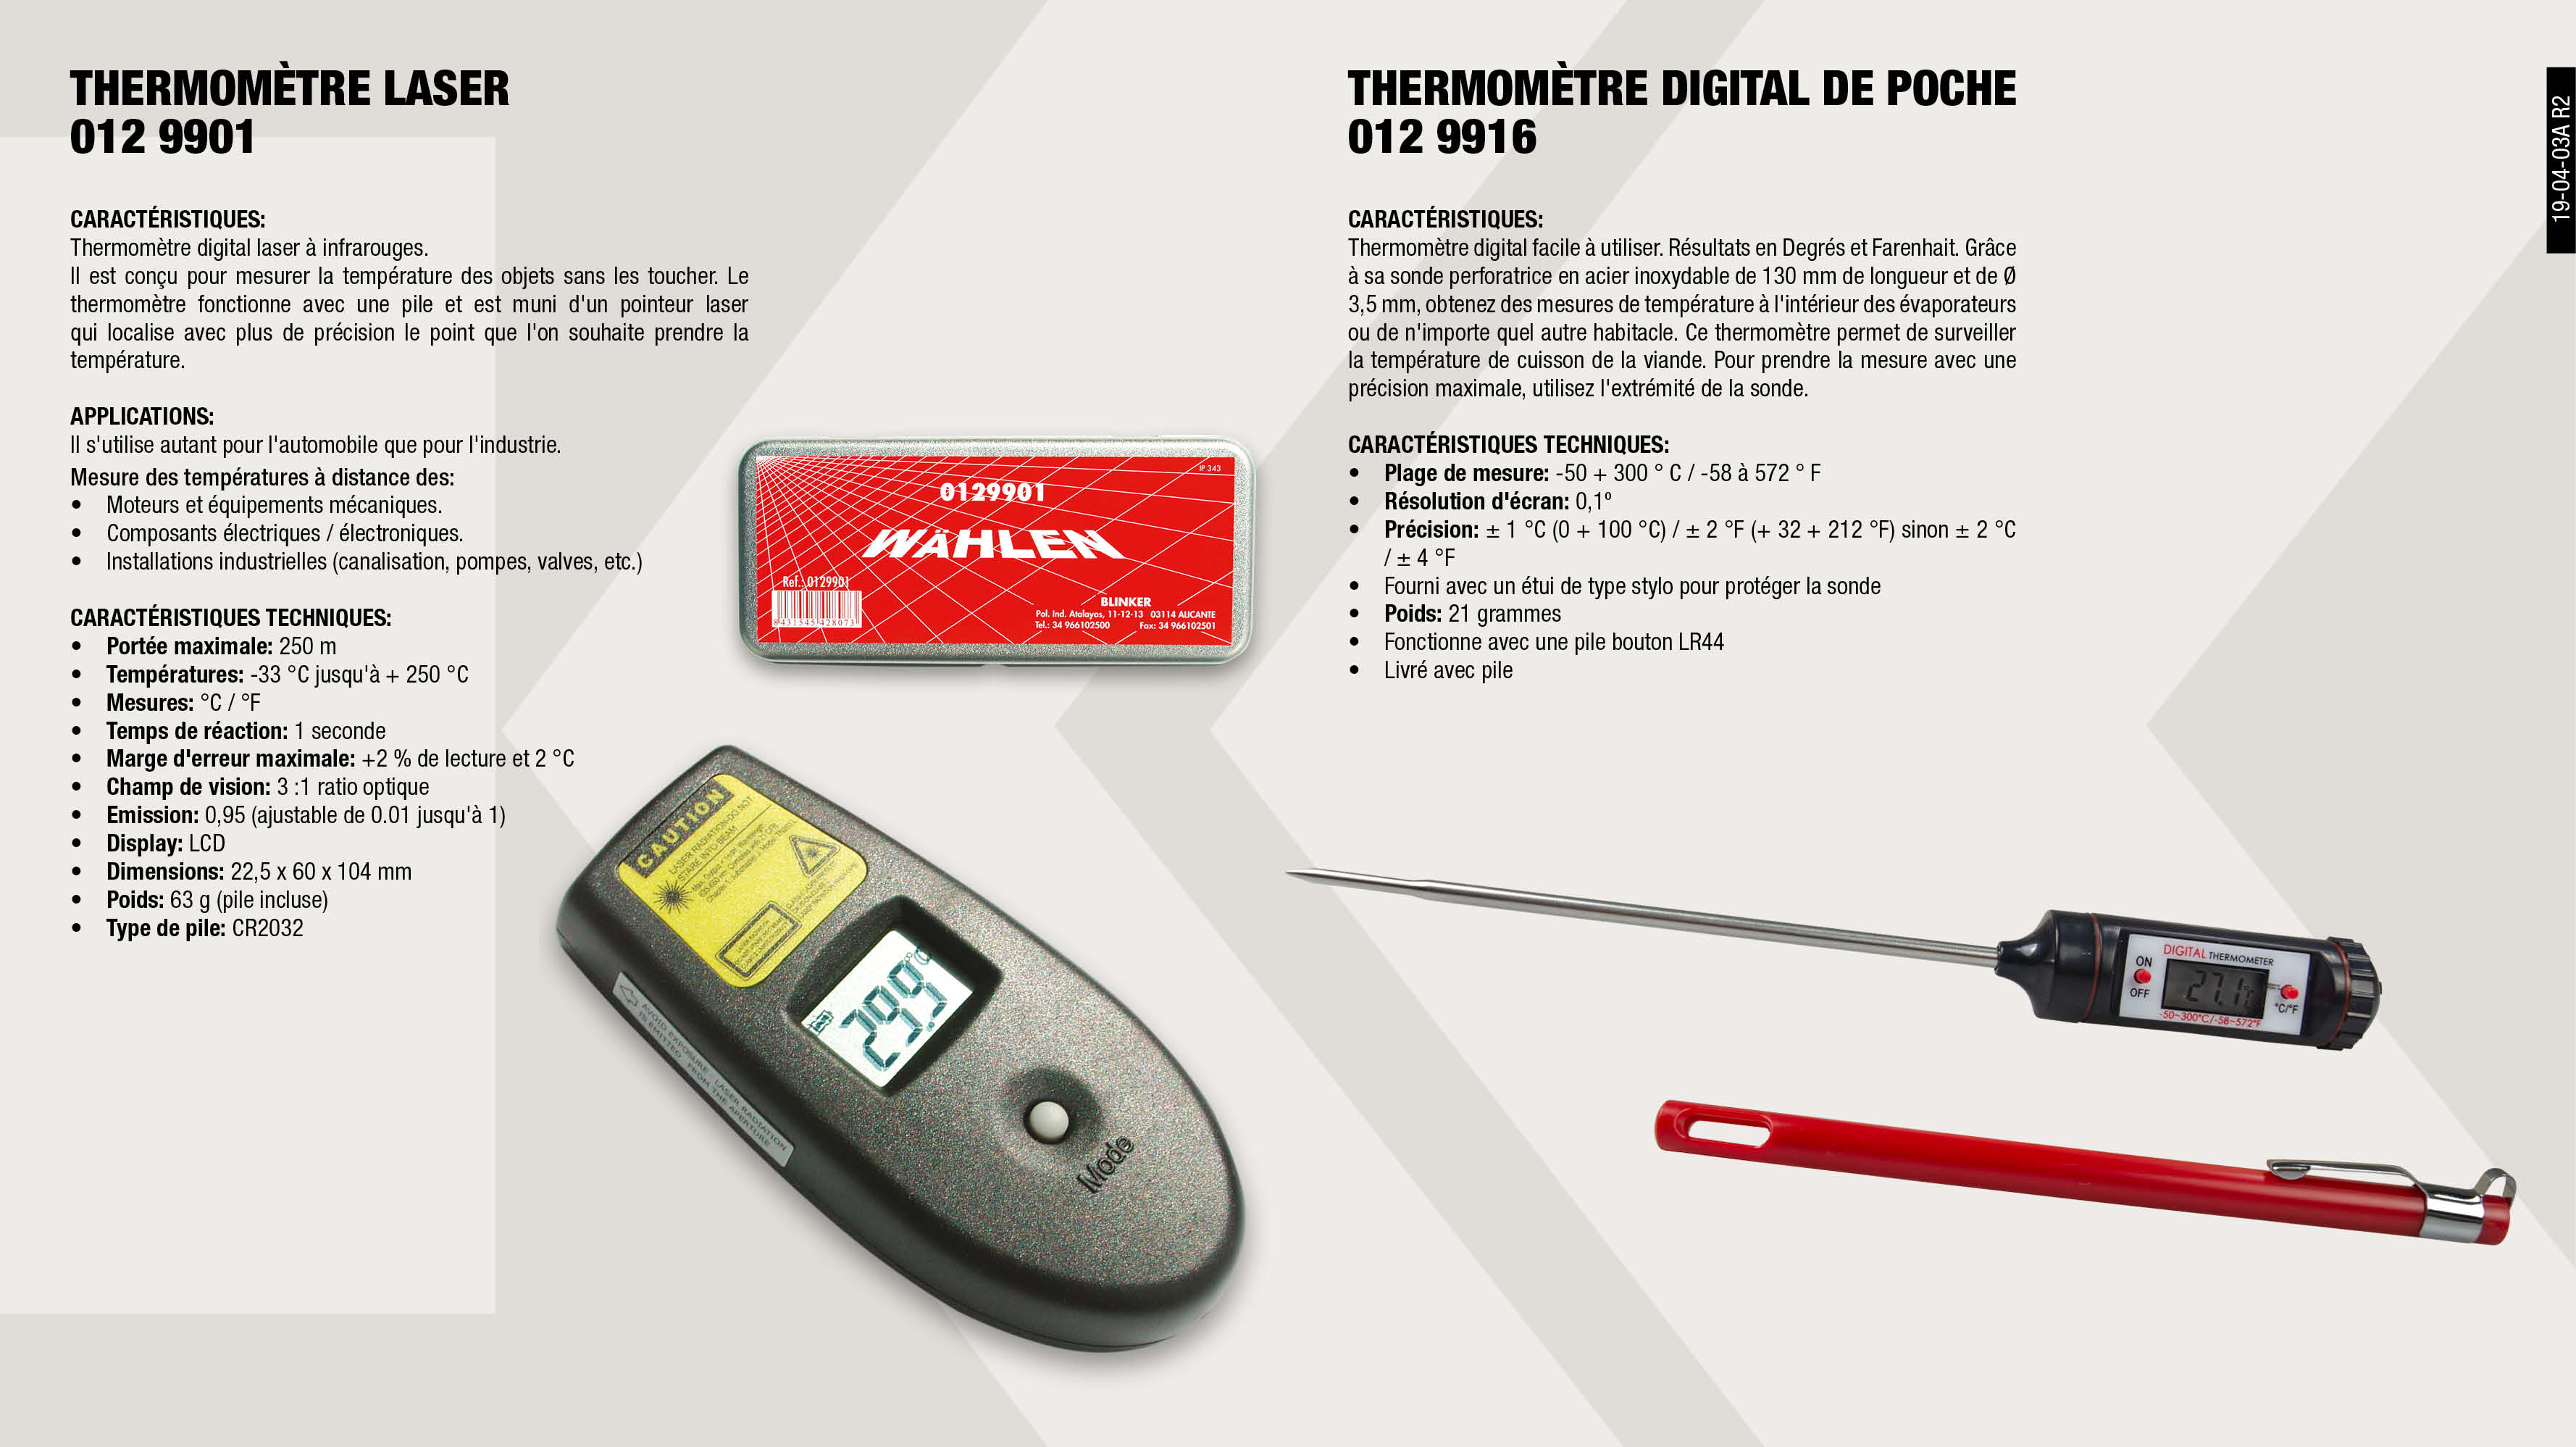 THERMOMETRE DIGITAL DE POCHE                                ,  									THERMOMETRE LASER                                           ,